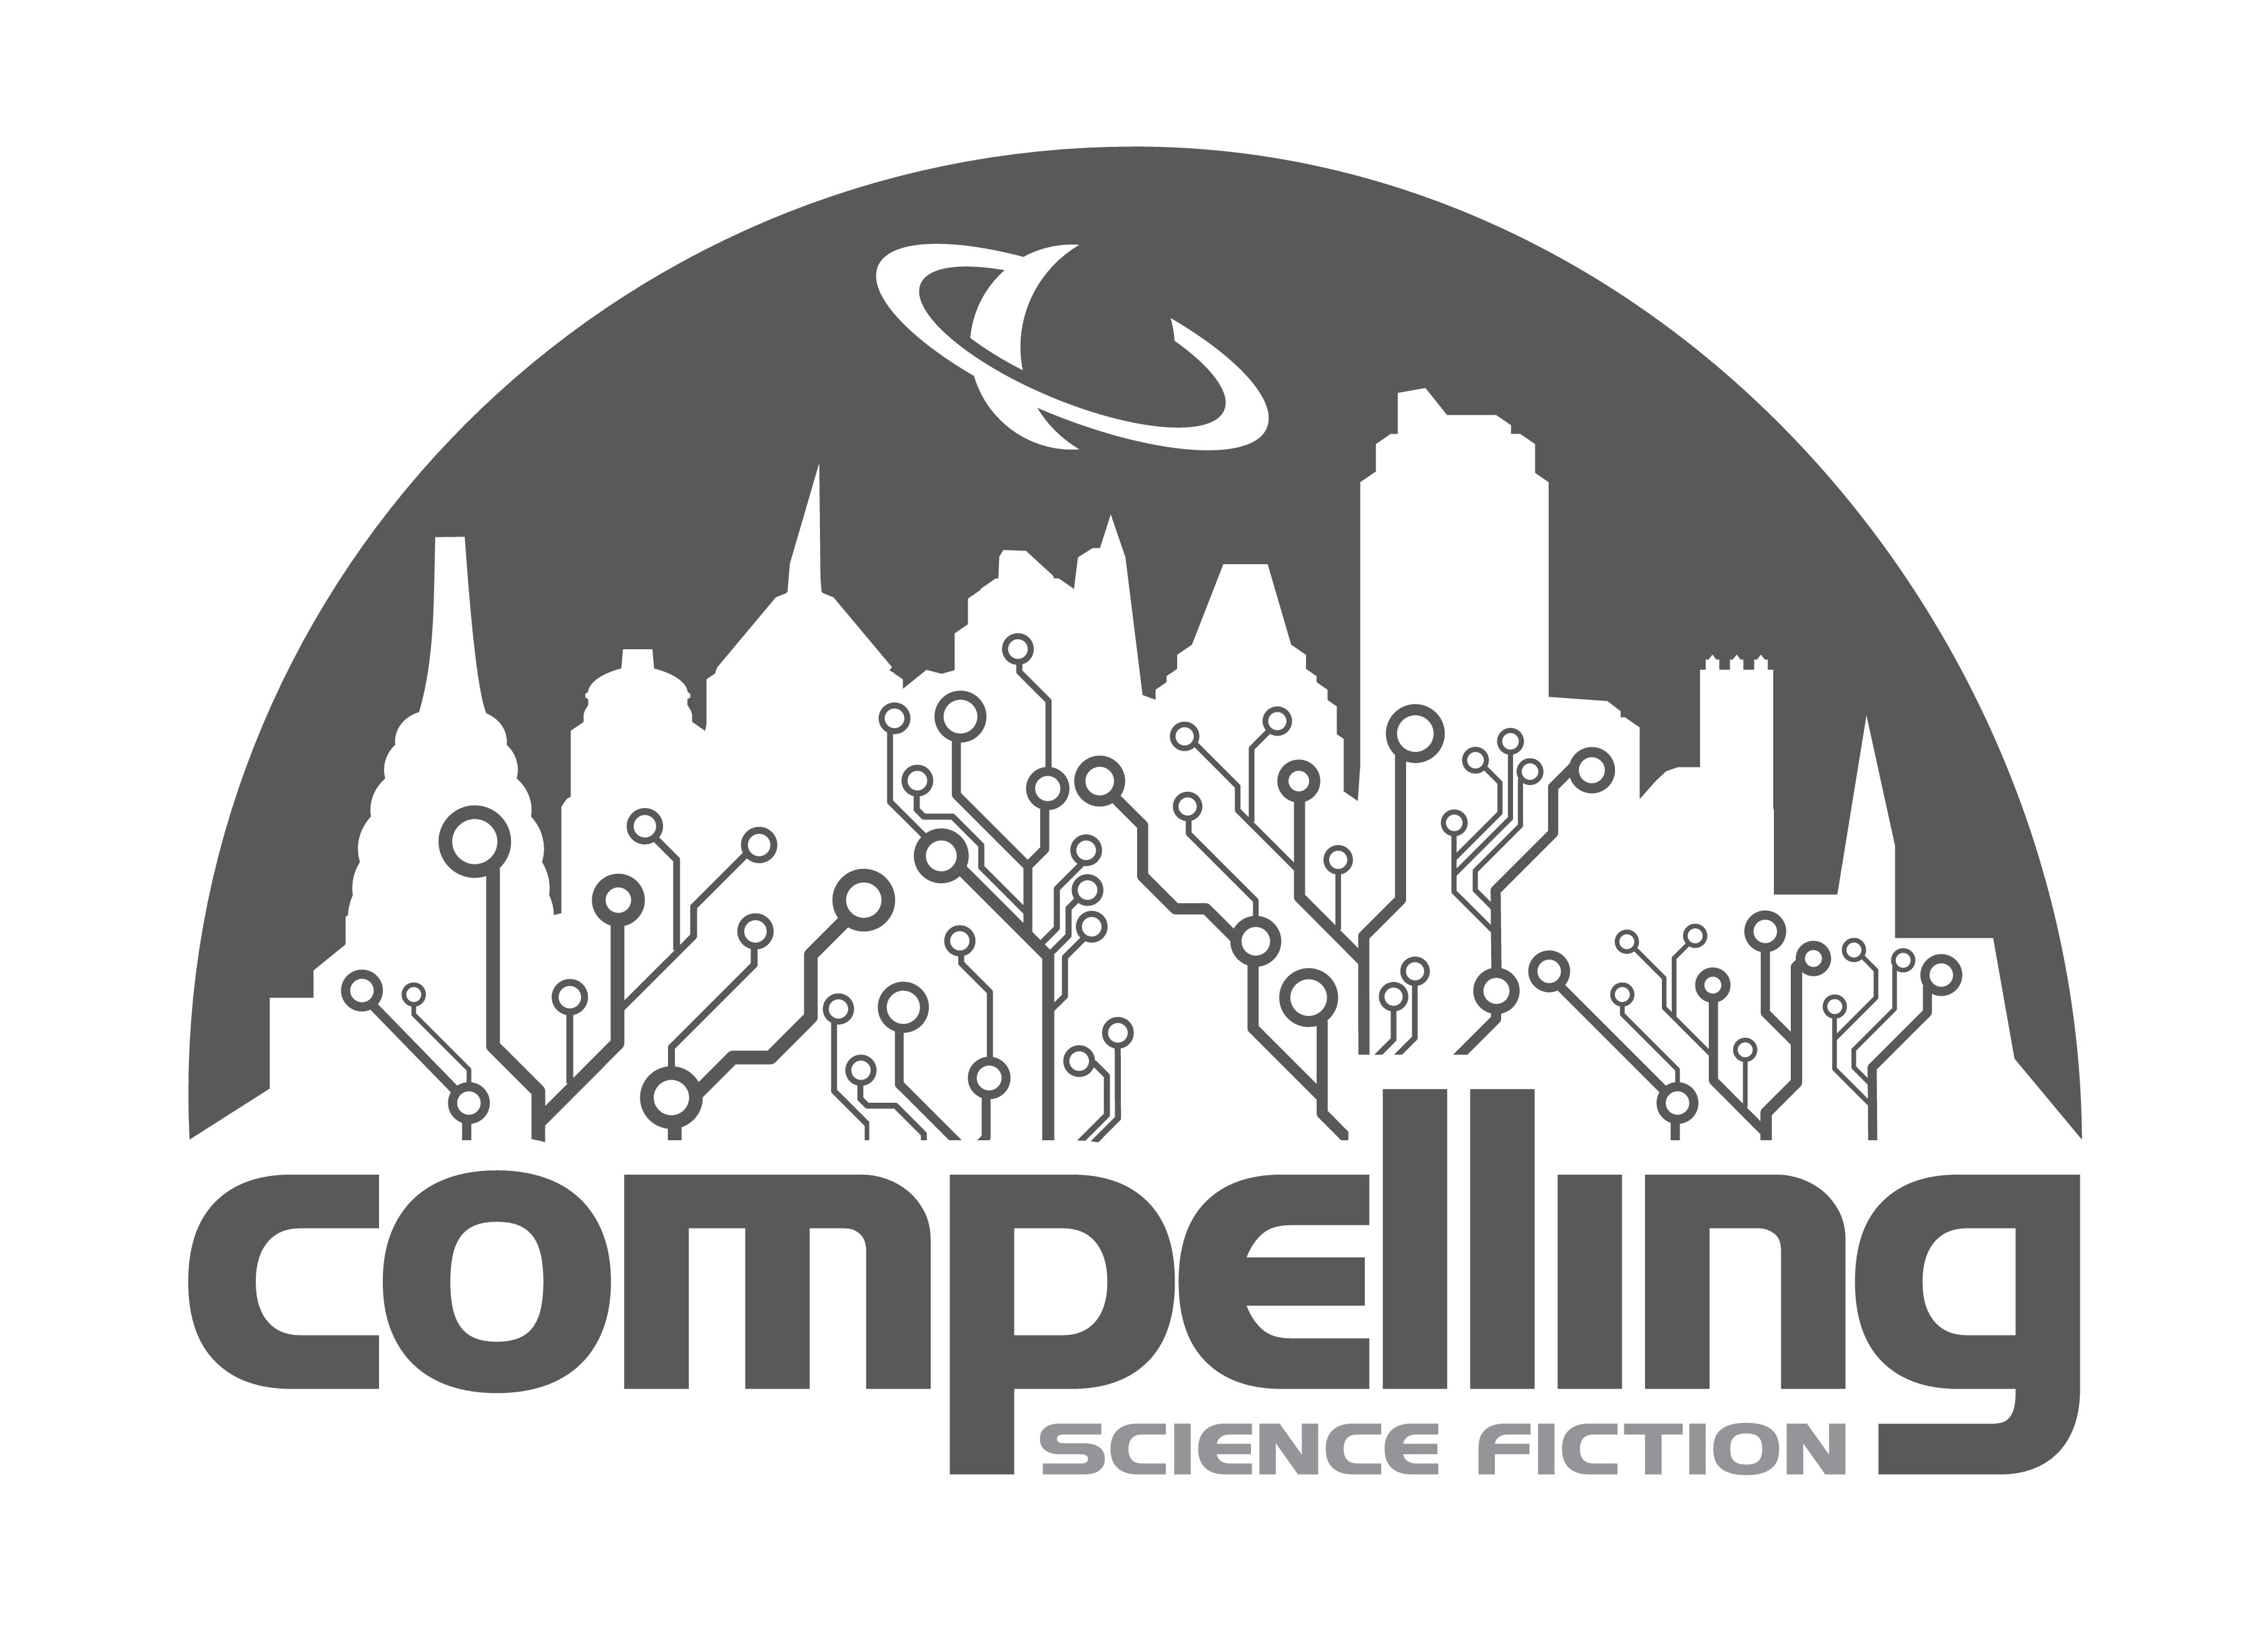 Create an inspiring science fiction magazine logo for Compelling Science Fiction